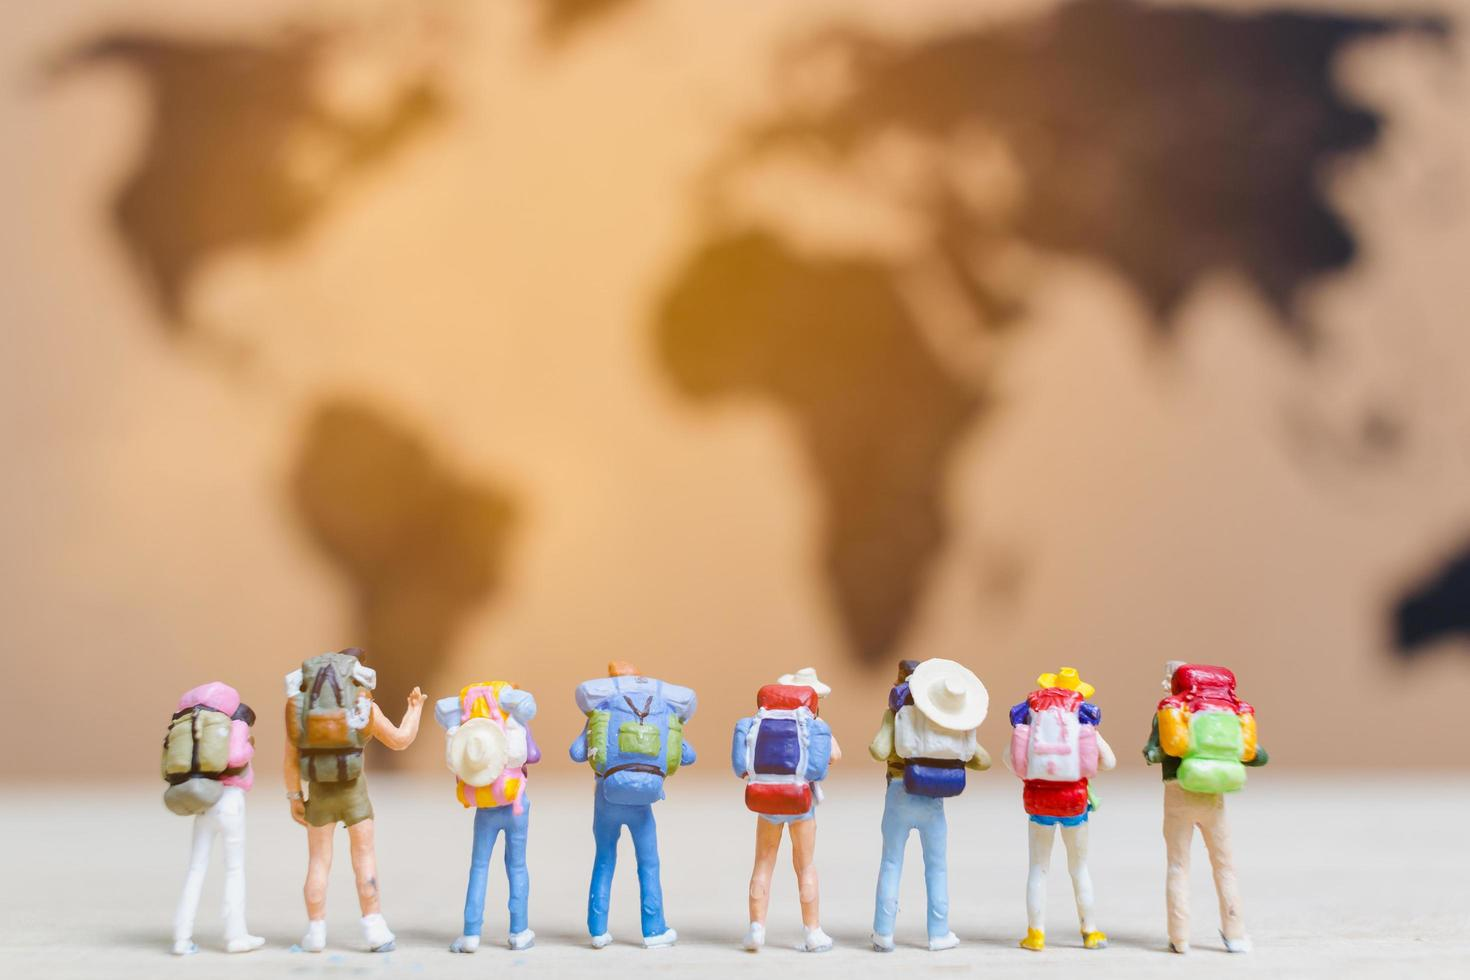 Miniature travelers walking on a world map, traveling and exploring the world concept photo